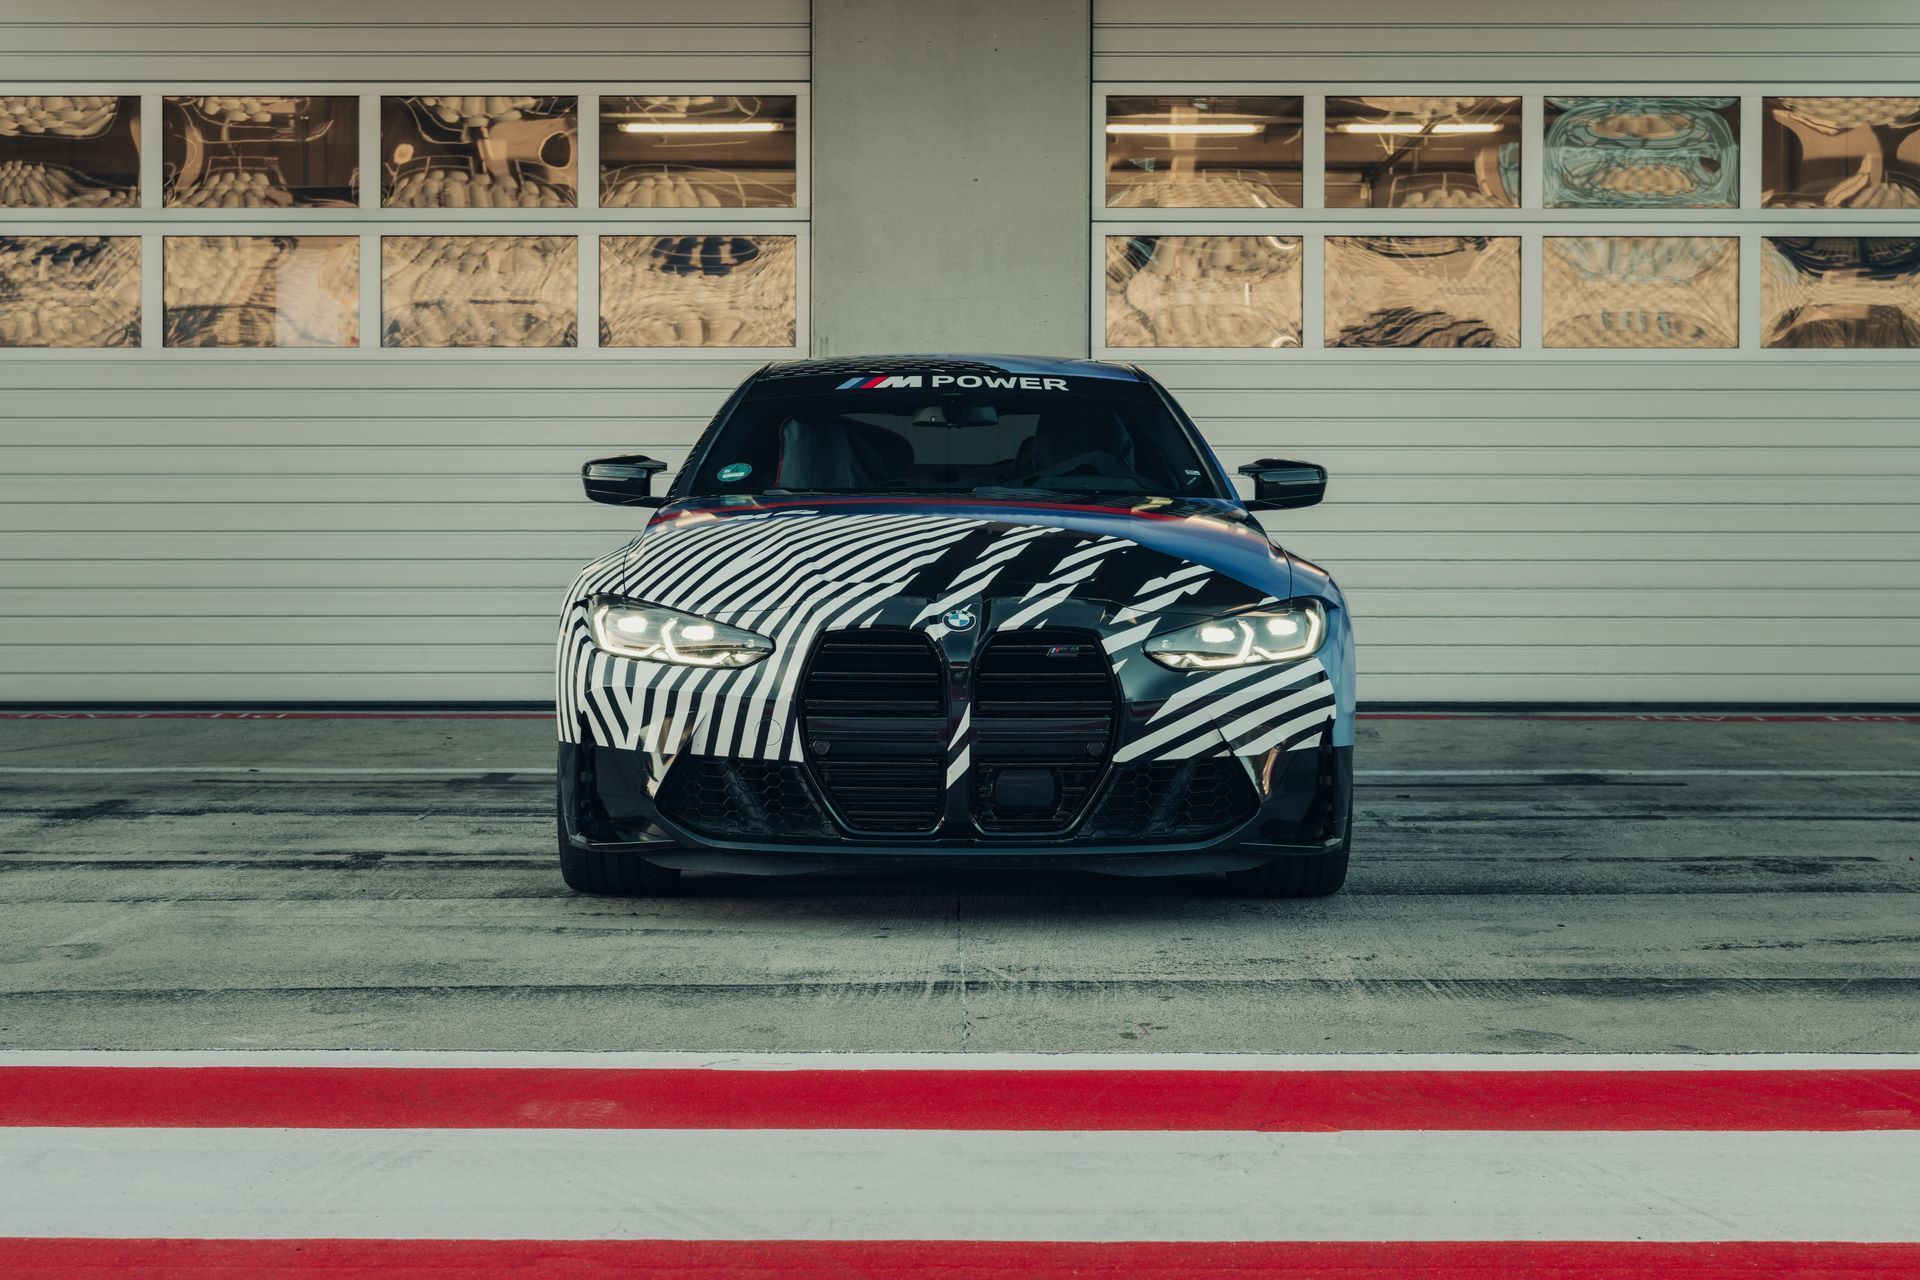 New-BMW-M4-Coupe-and-BMW-M4-GT3-prototypes-8